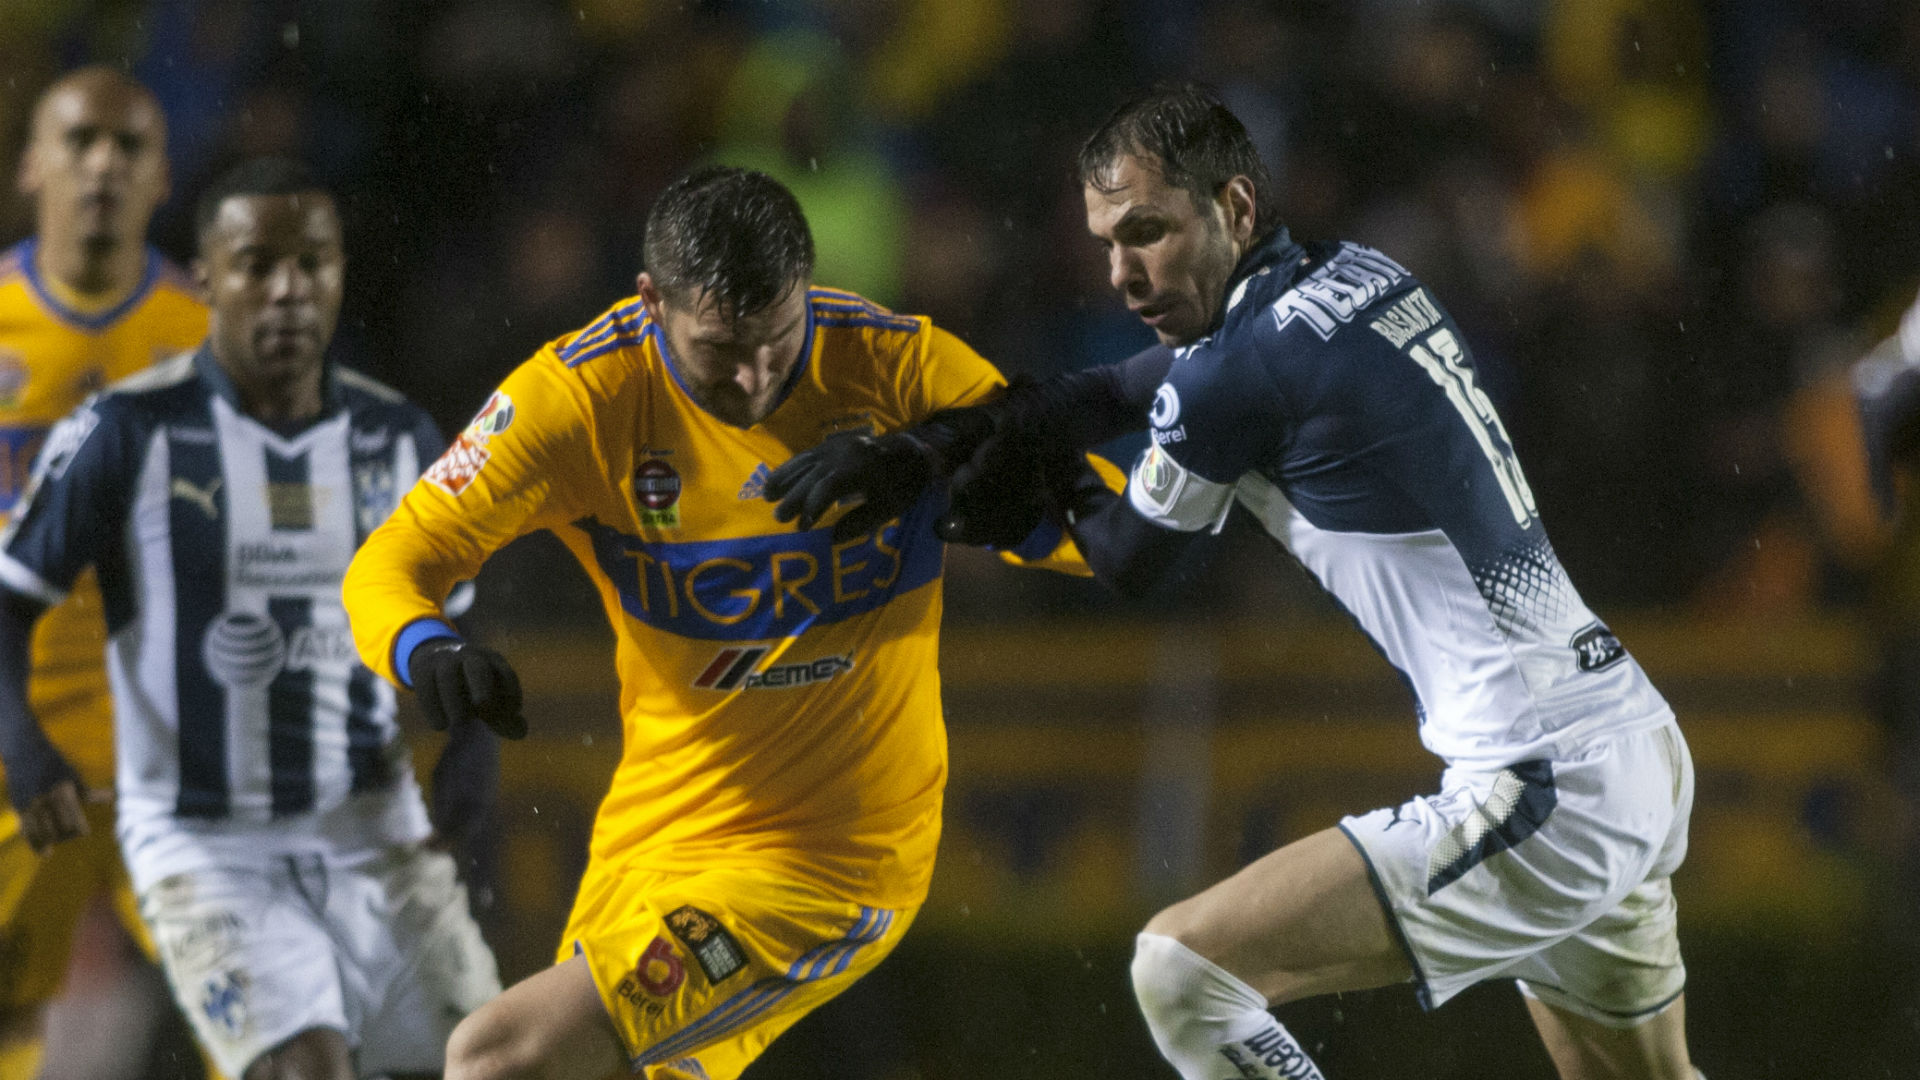 Monterrey vs Tigres: Liga MX final live stream, team news, kick-off time, & match preview | Goal.com